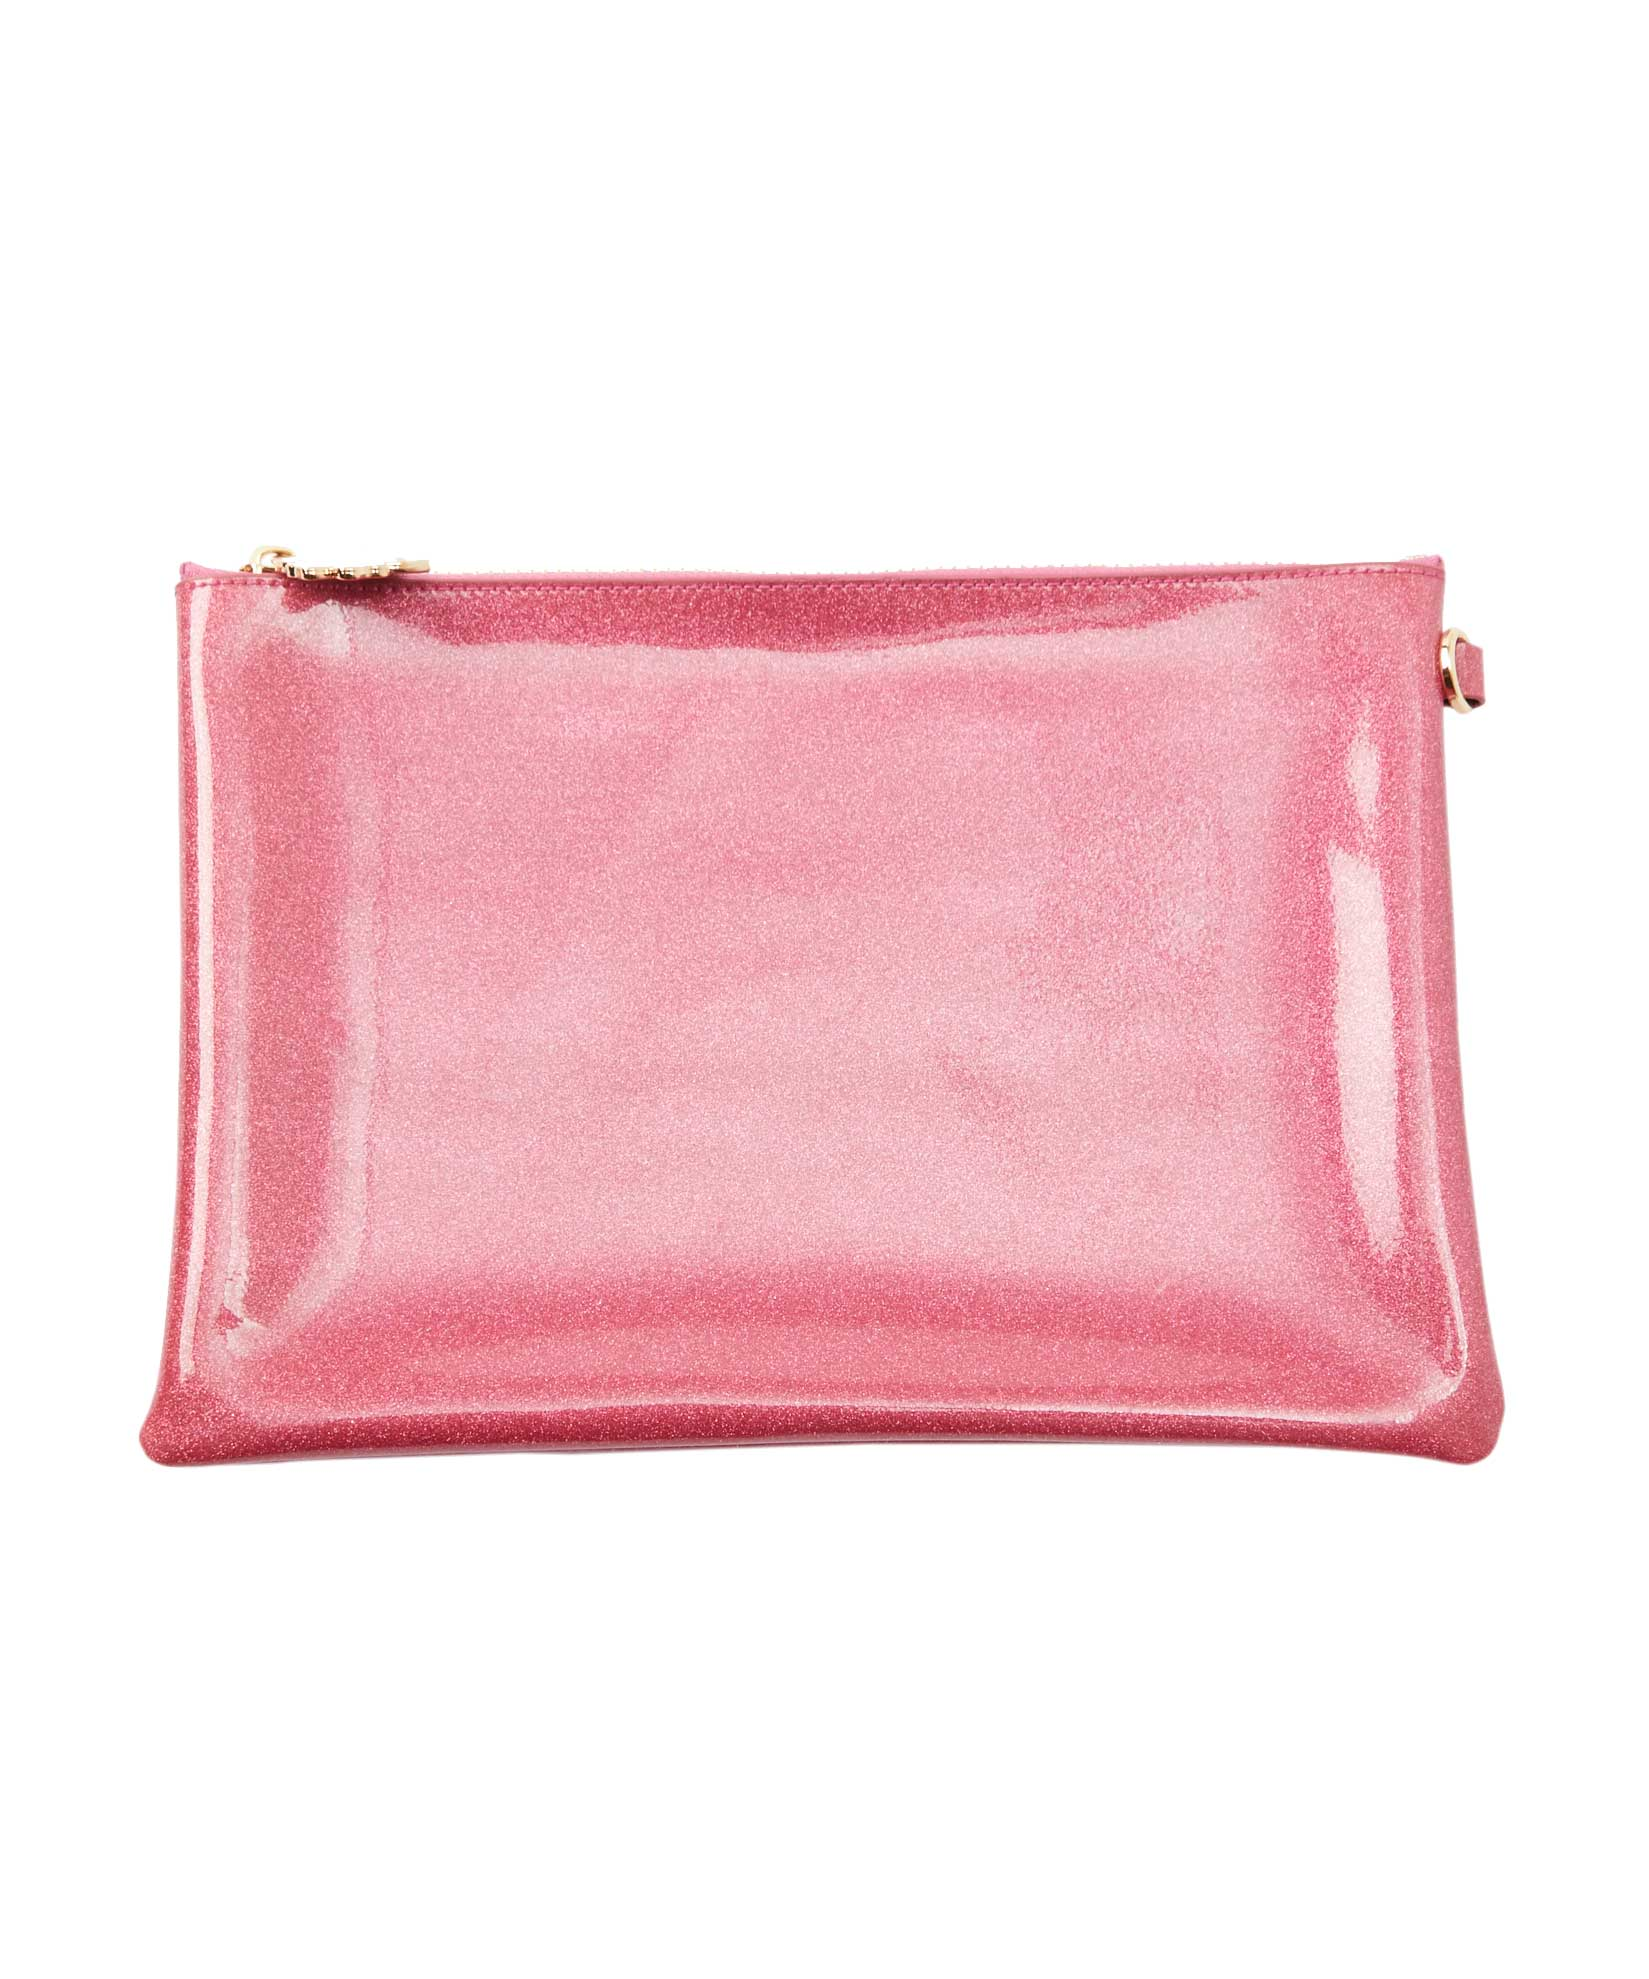 Stoney Clover Lane pink pouch